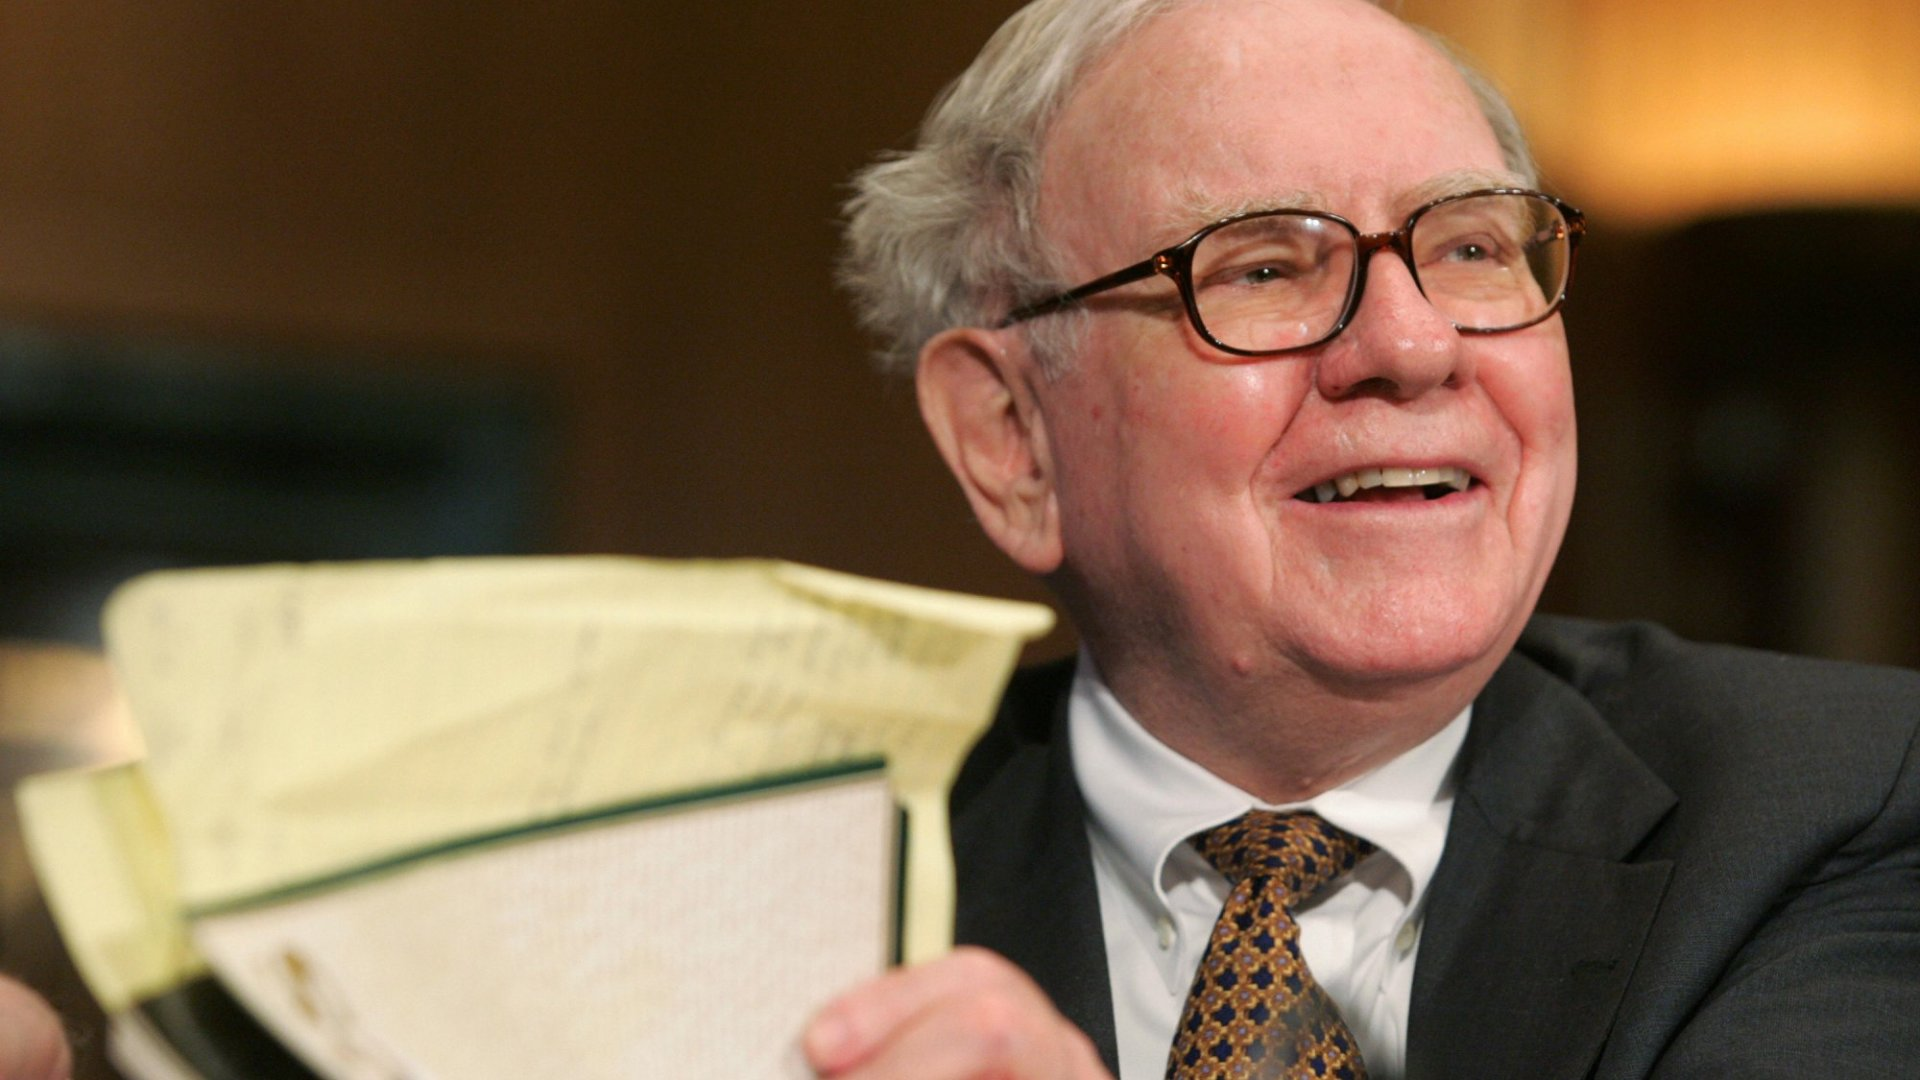 Warren Buffett Says You Should Read 500 Pages a Day (Yikes). Here Are 7 Ways to at Least Read More